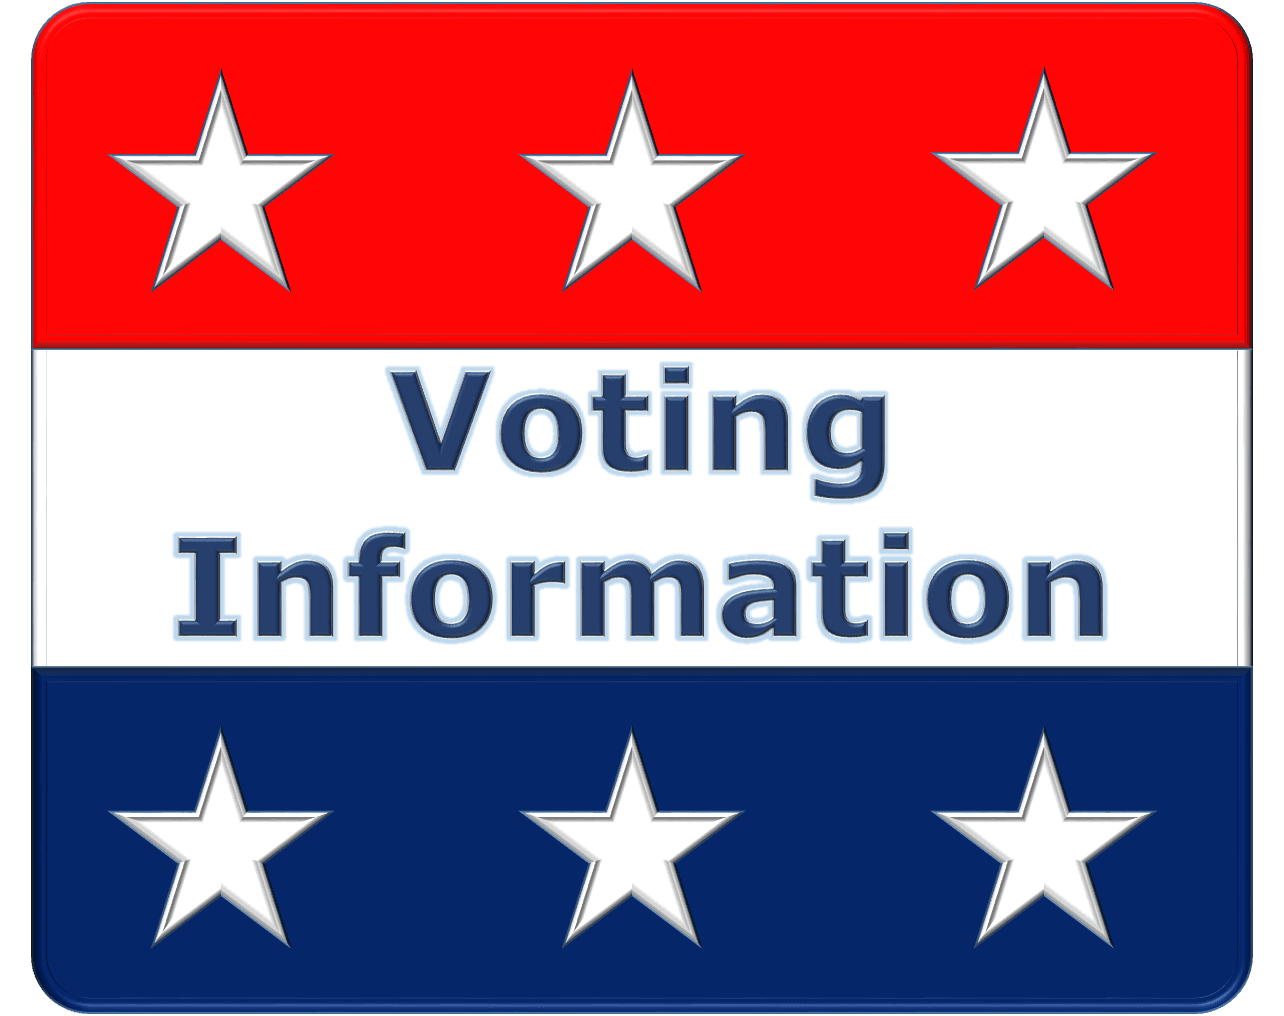 VotingInformation